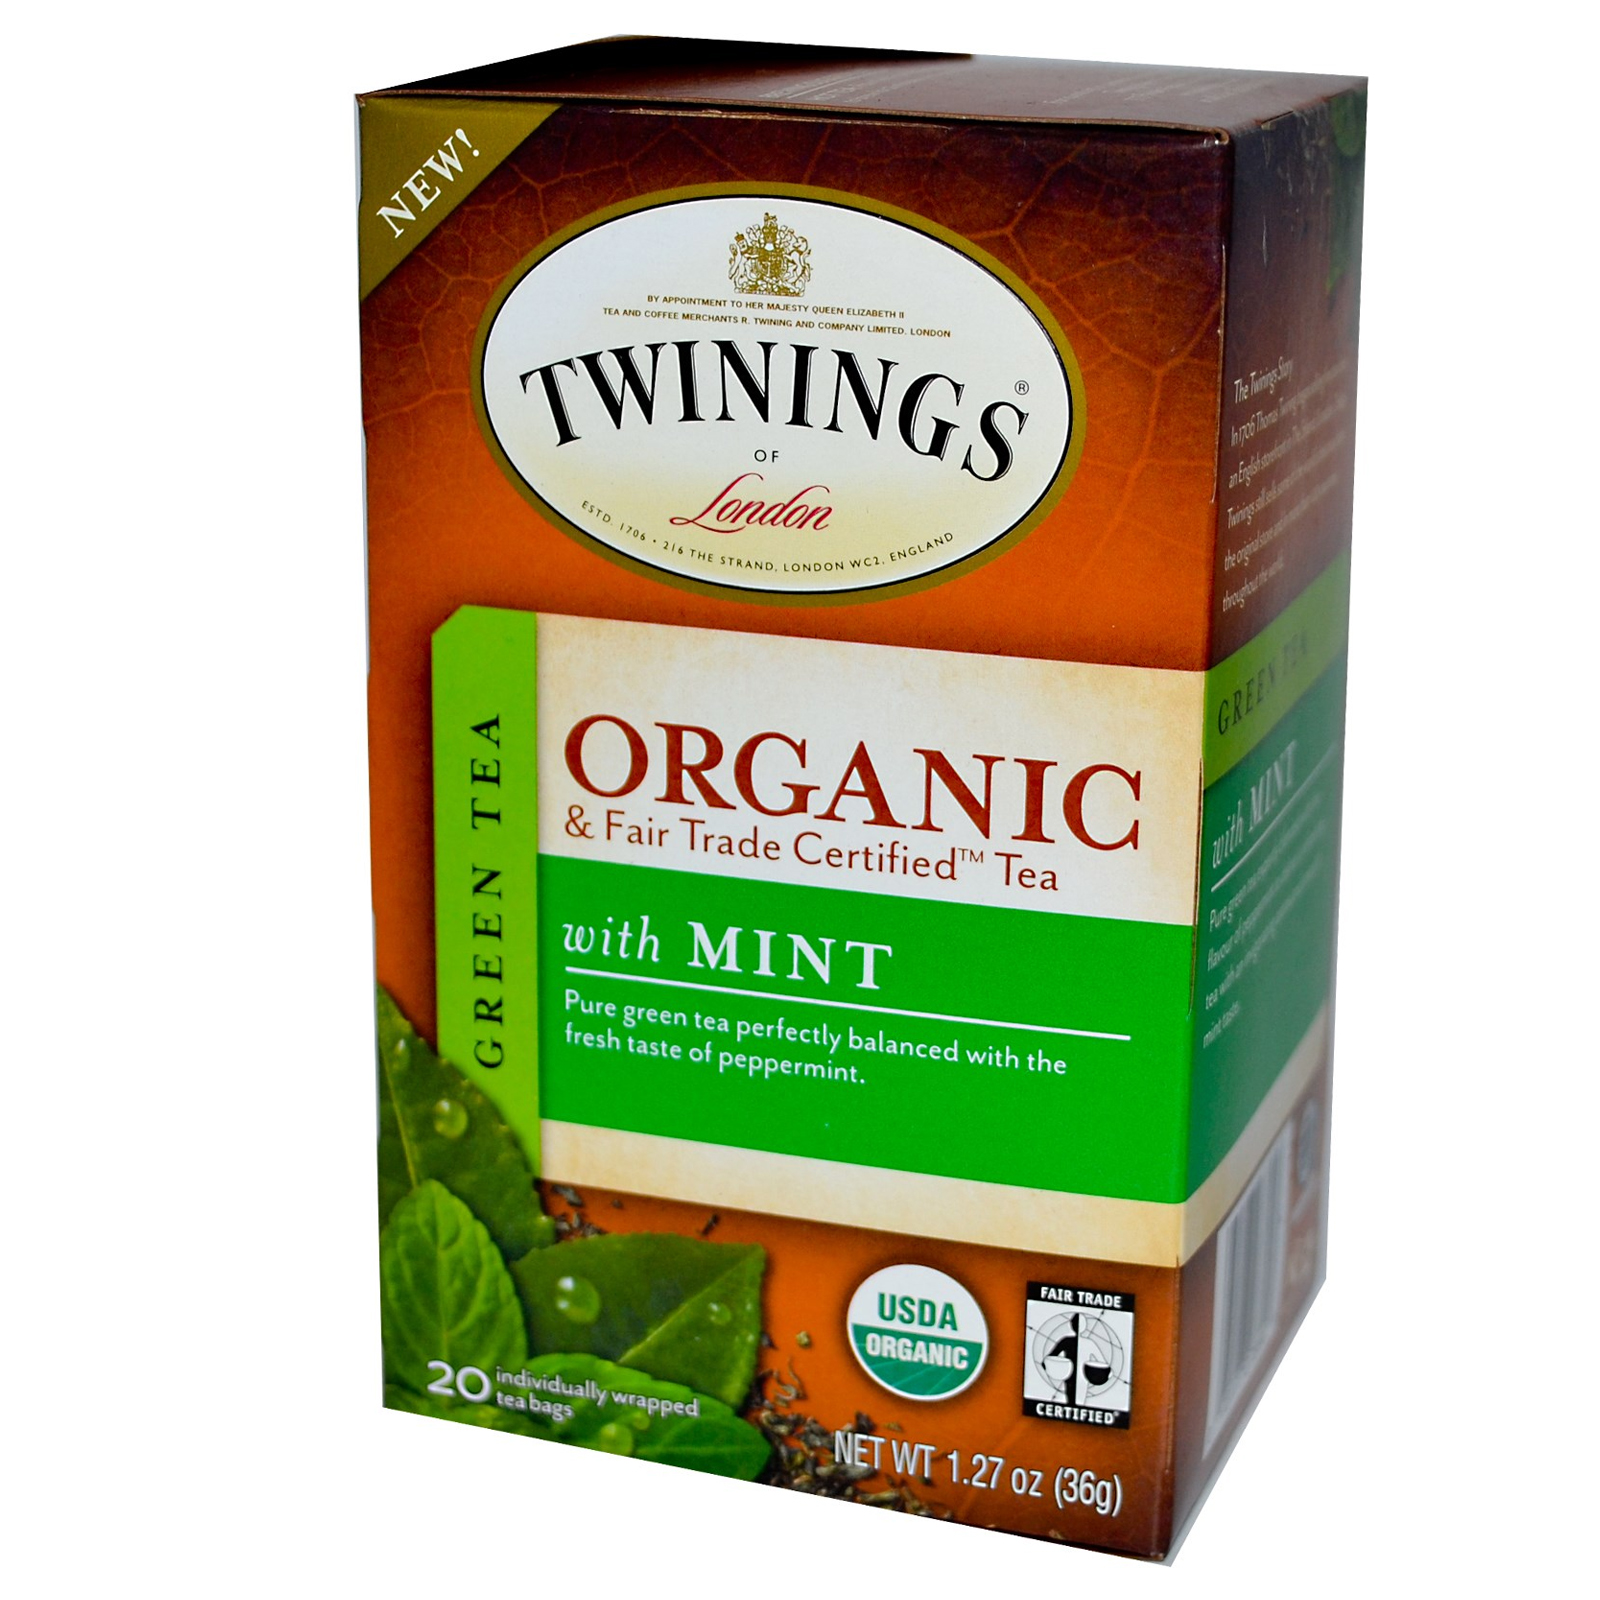 Mint Green Organic Tea From Twinings